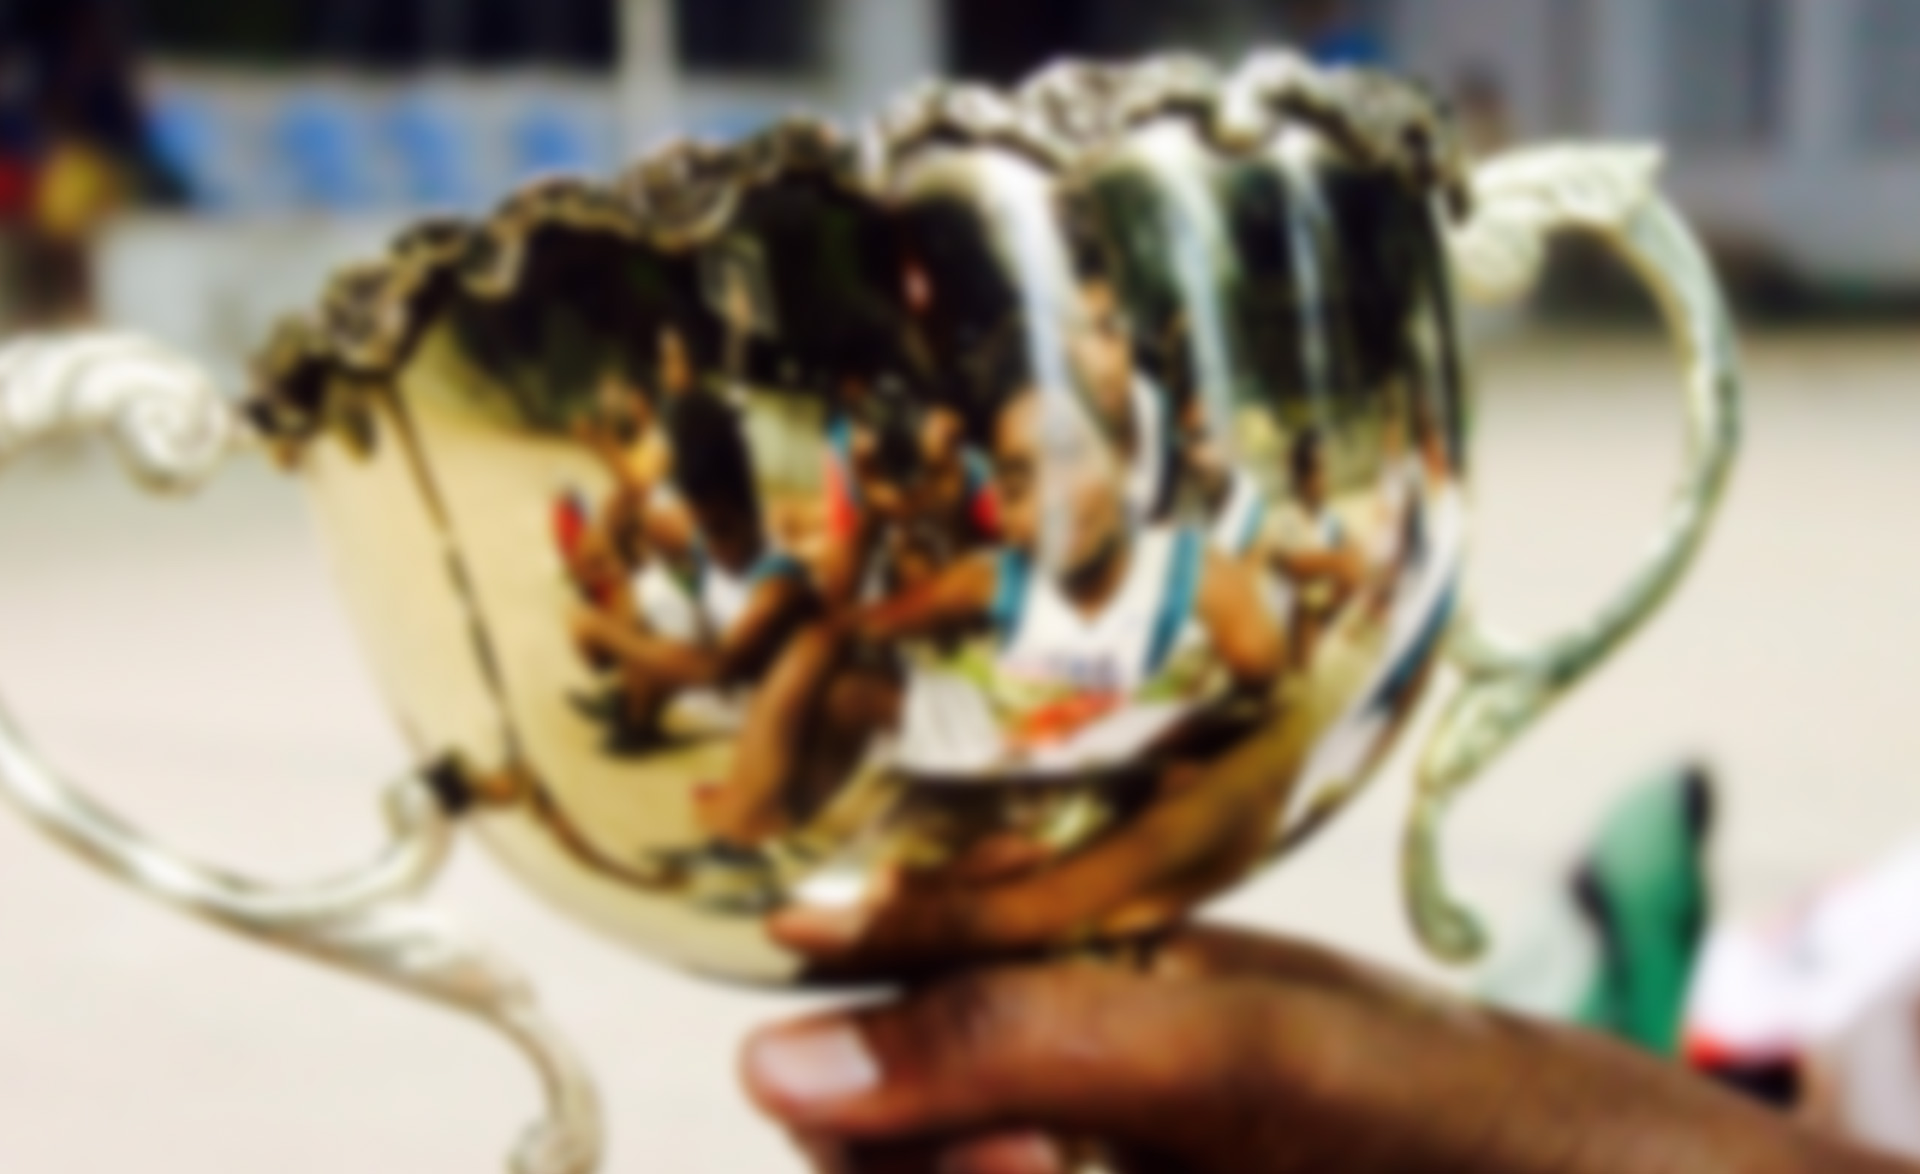 trophies & engravers coverted trophies